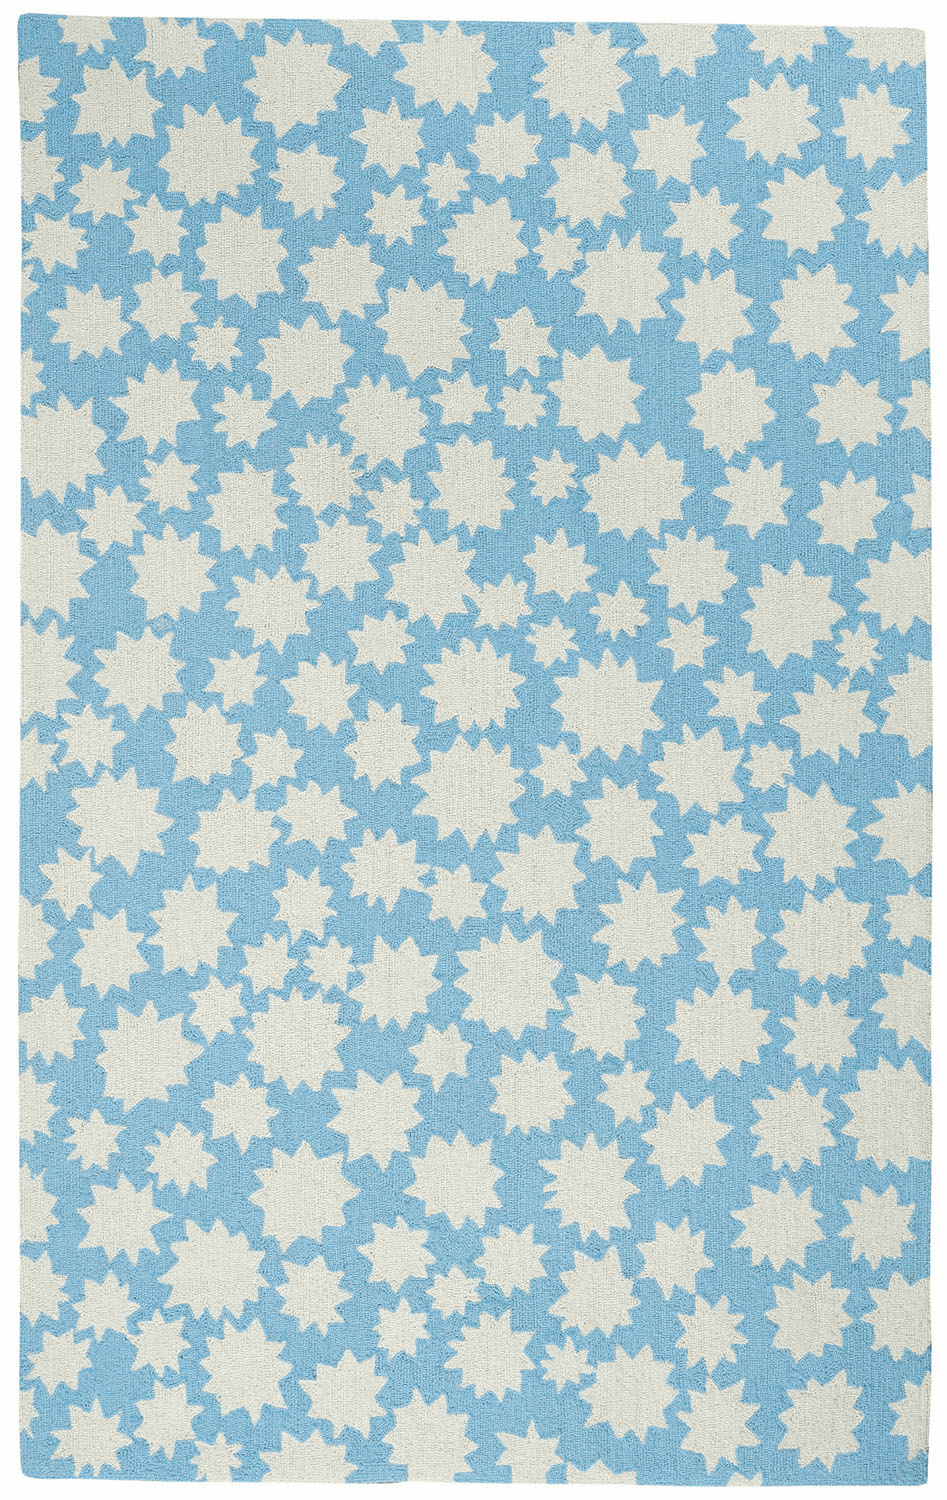 Loop Hooked Blue Seas Rug